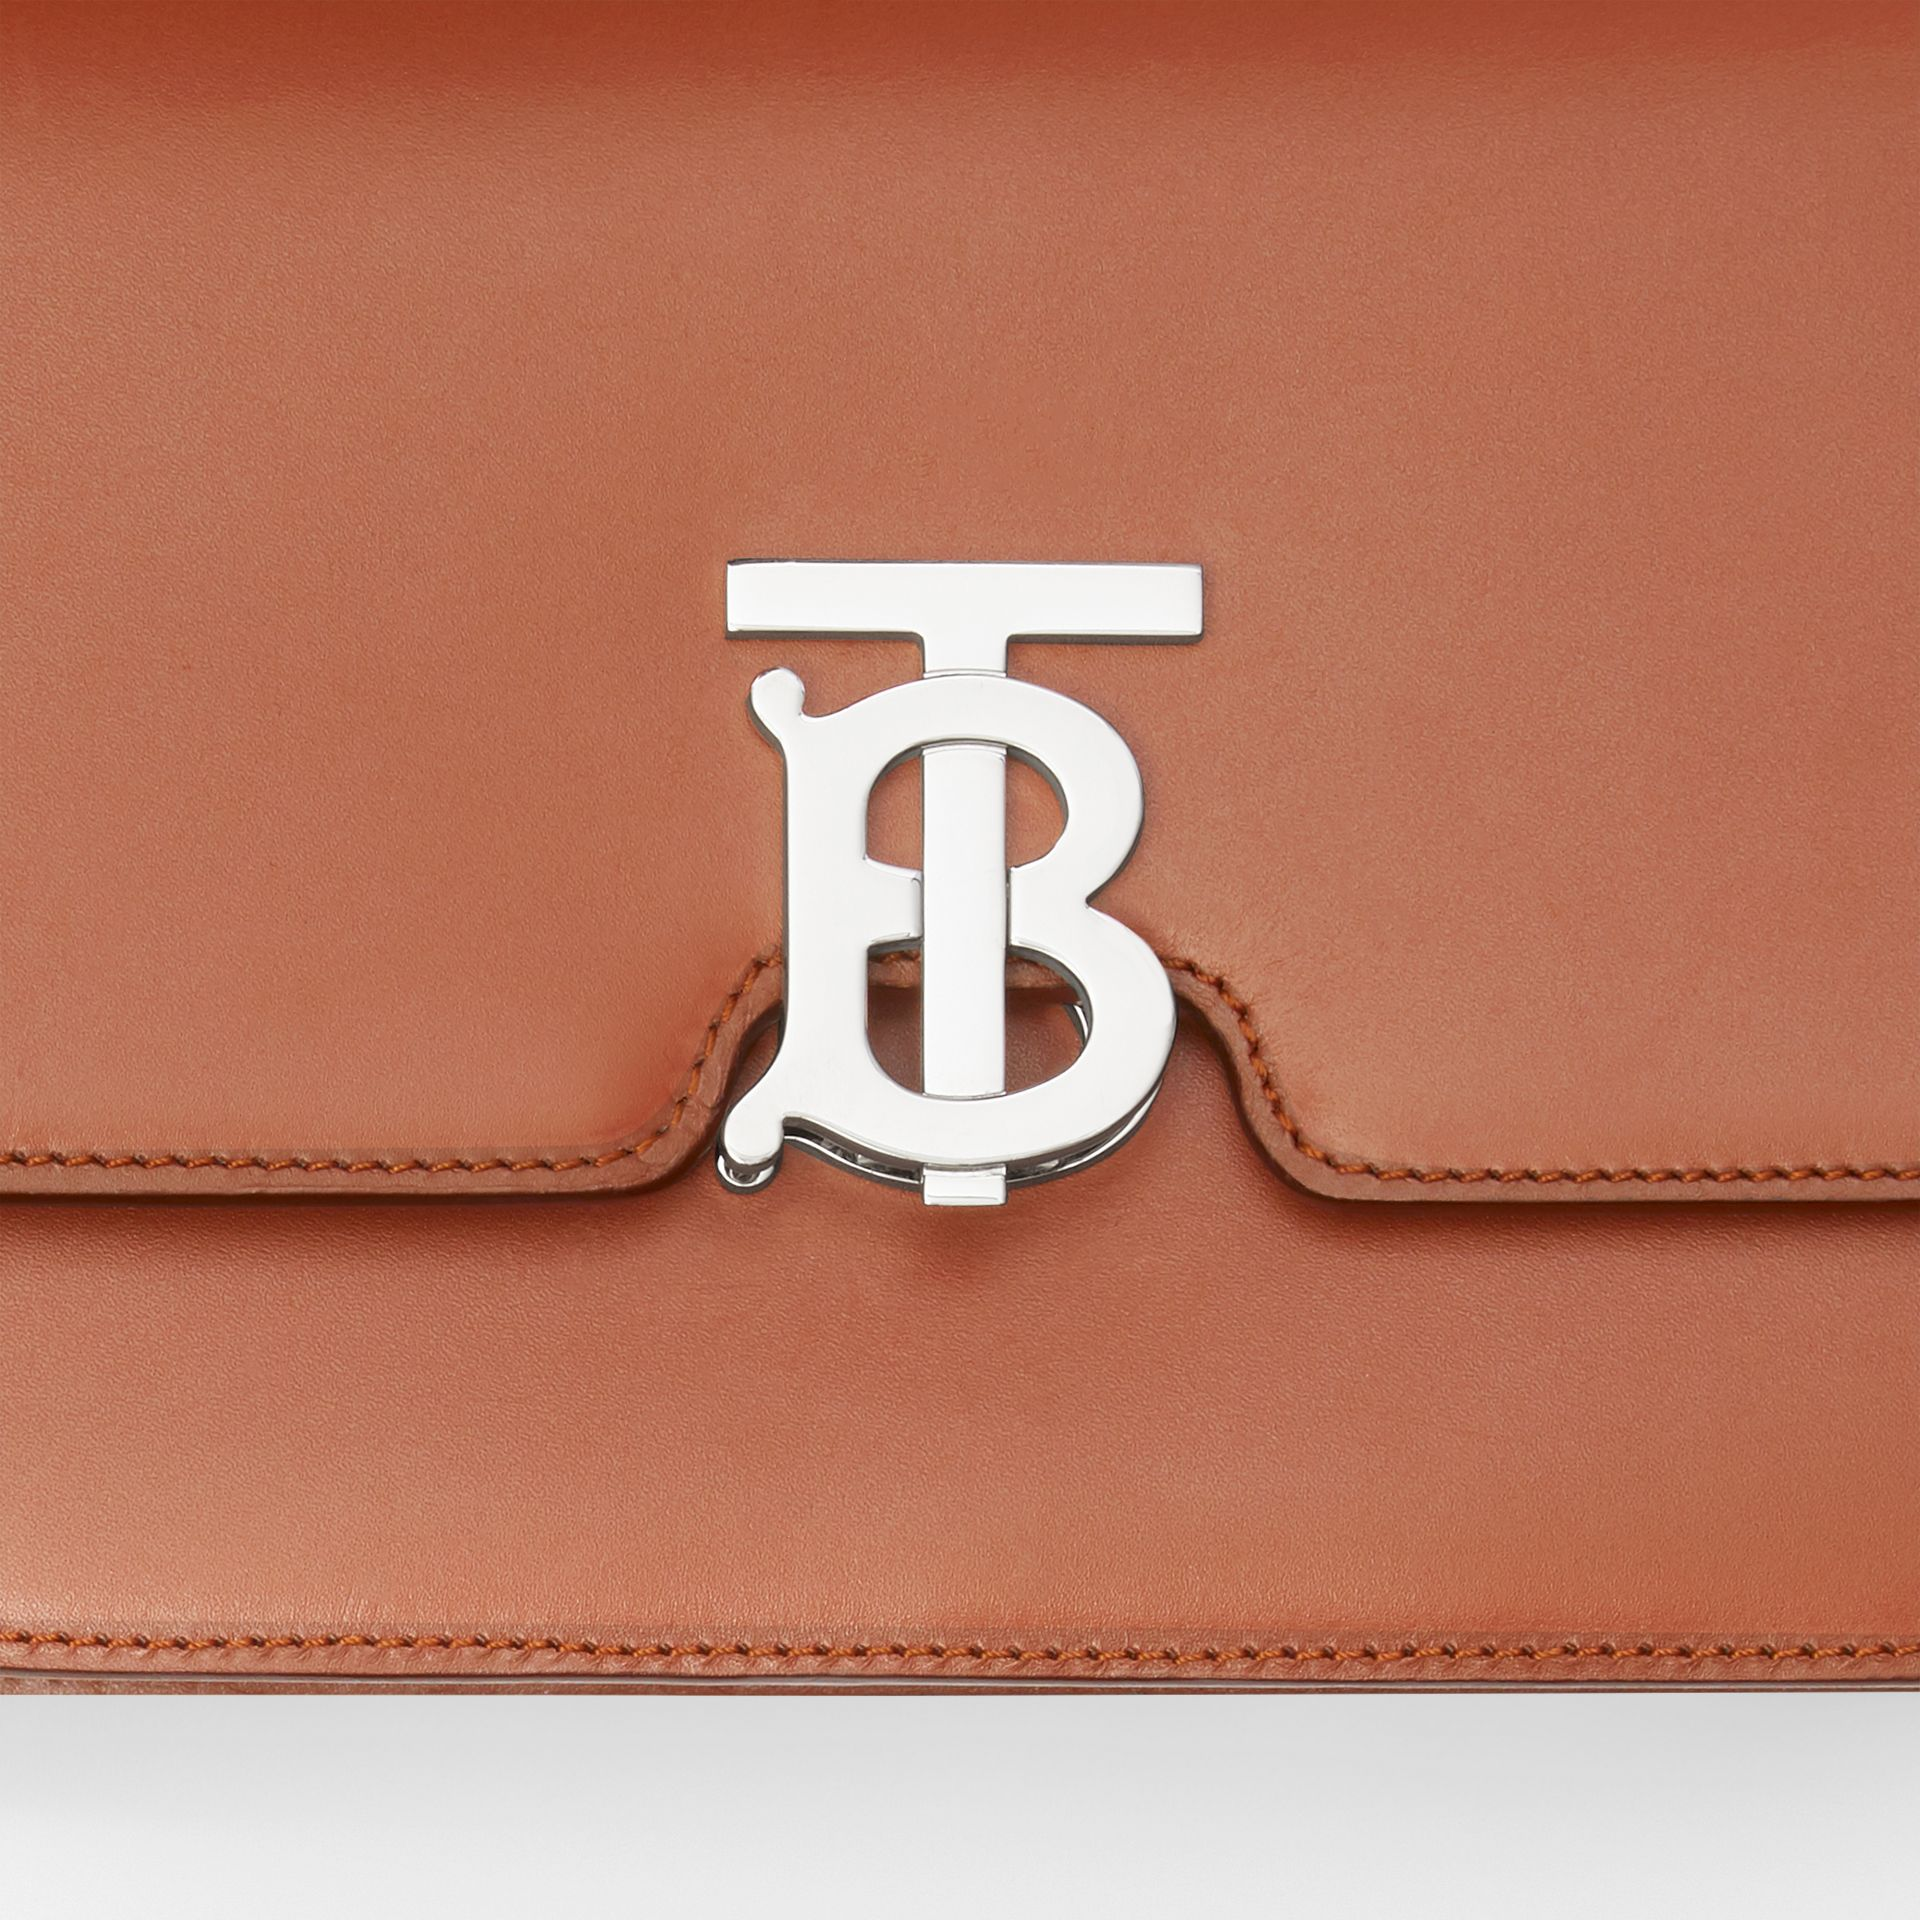 Small Leather TB Bag in Malt Brown - Women | Burberry United States - gallery image 1